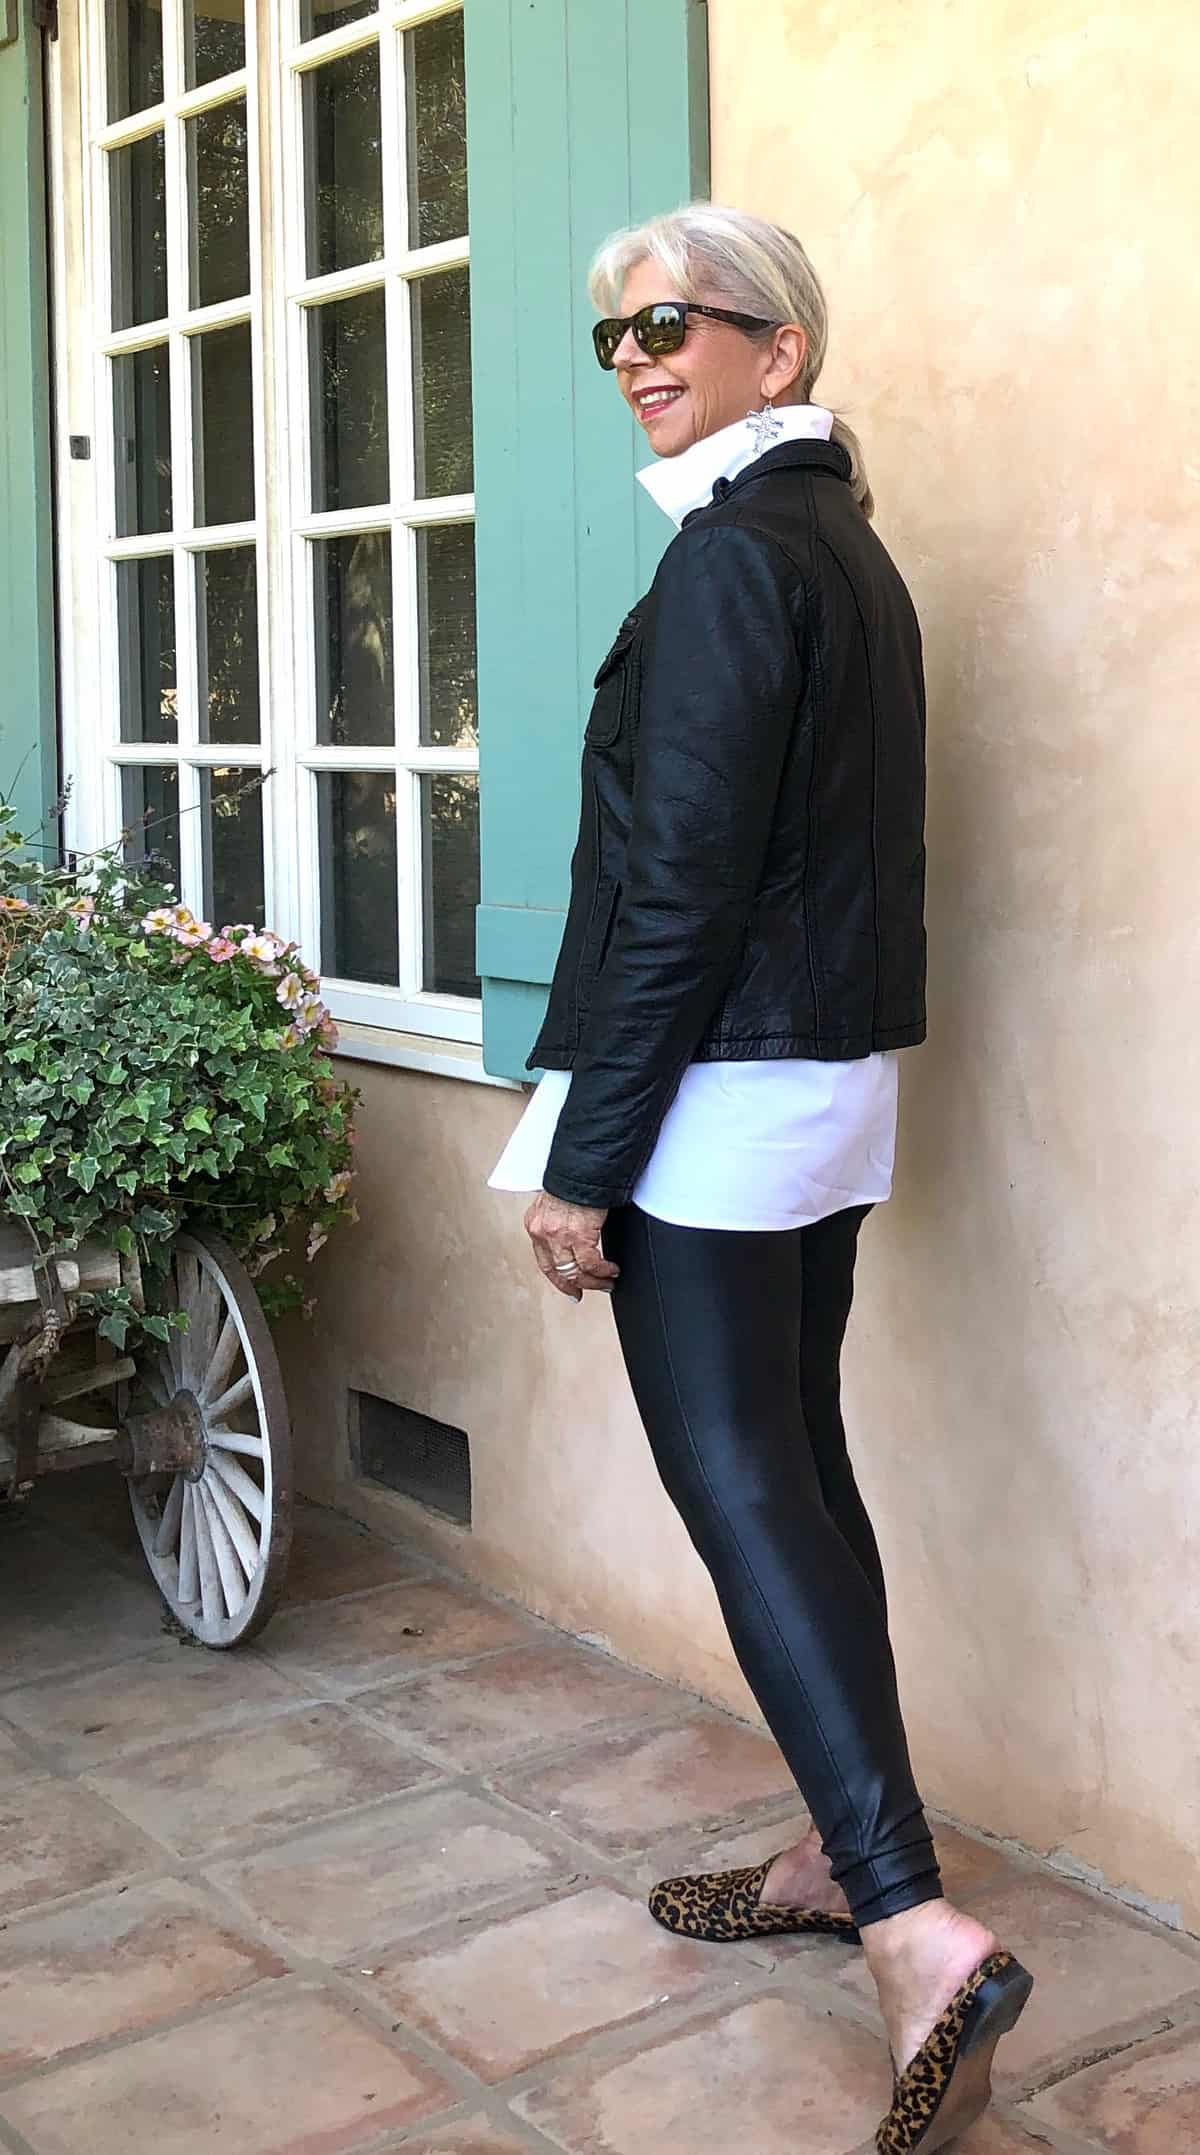 cindy hattersley in black moto jacket, chicos shirt, and spanx leggings